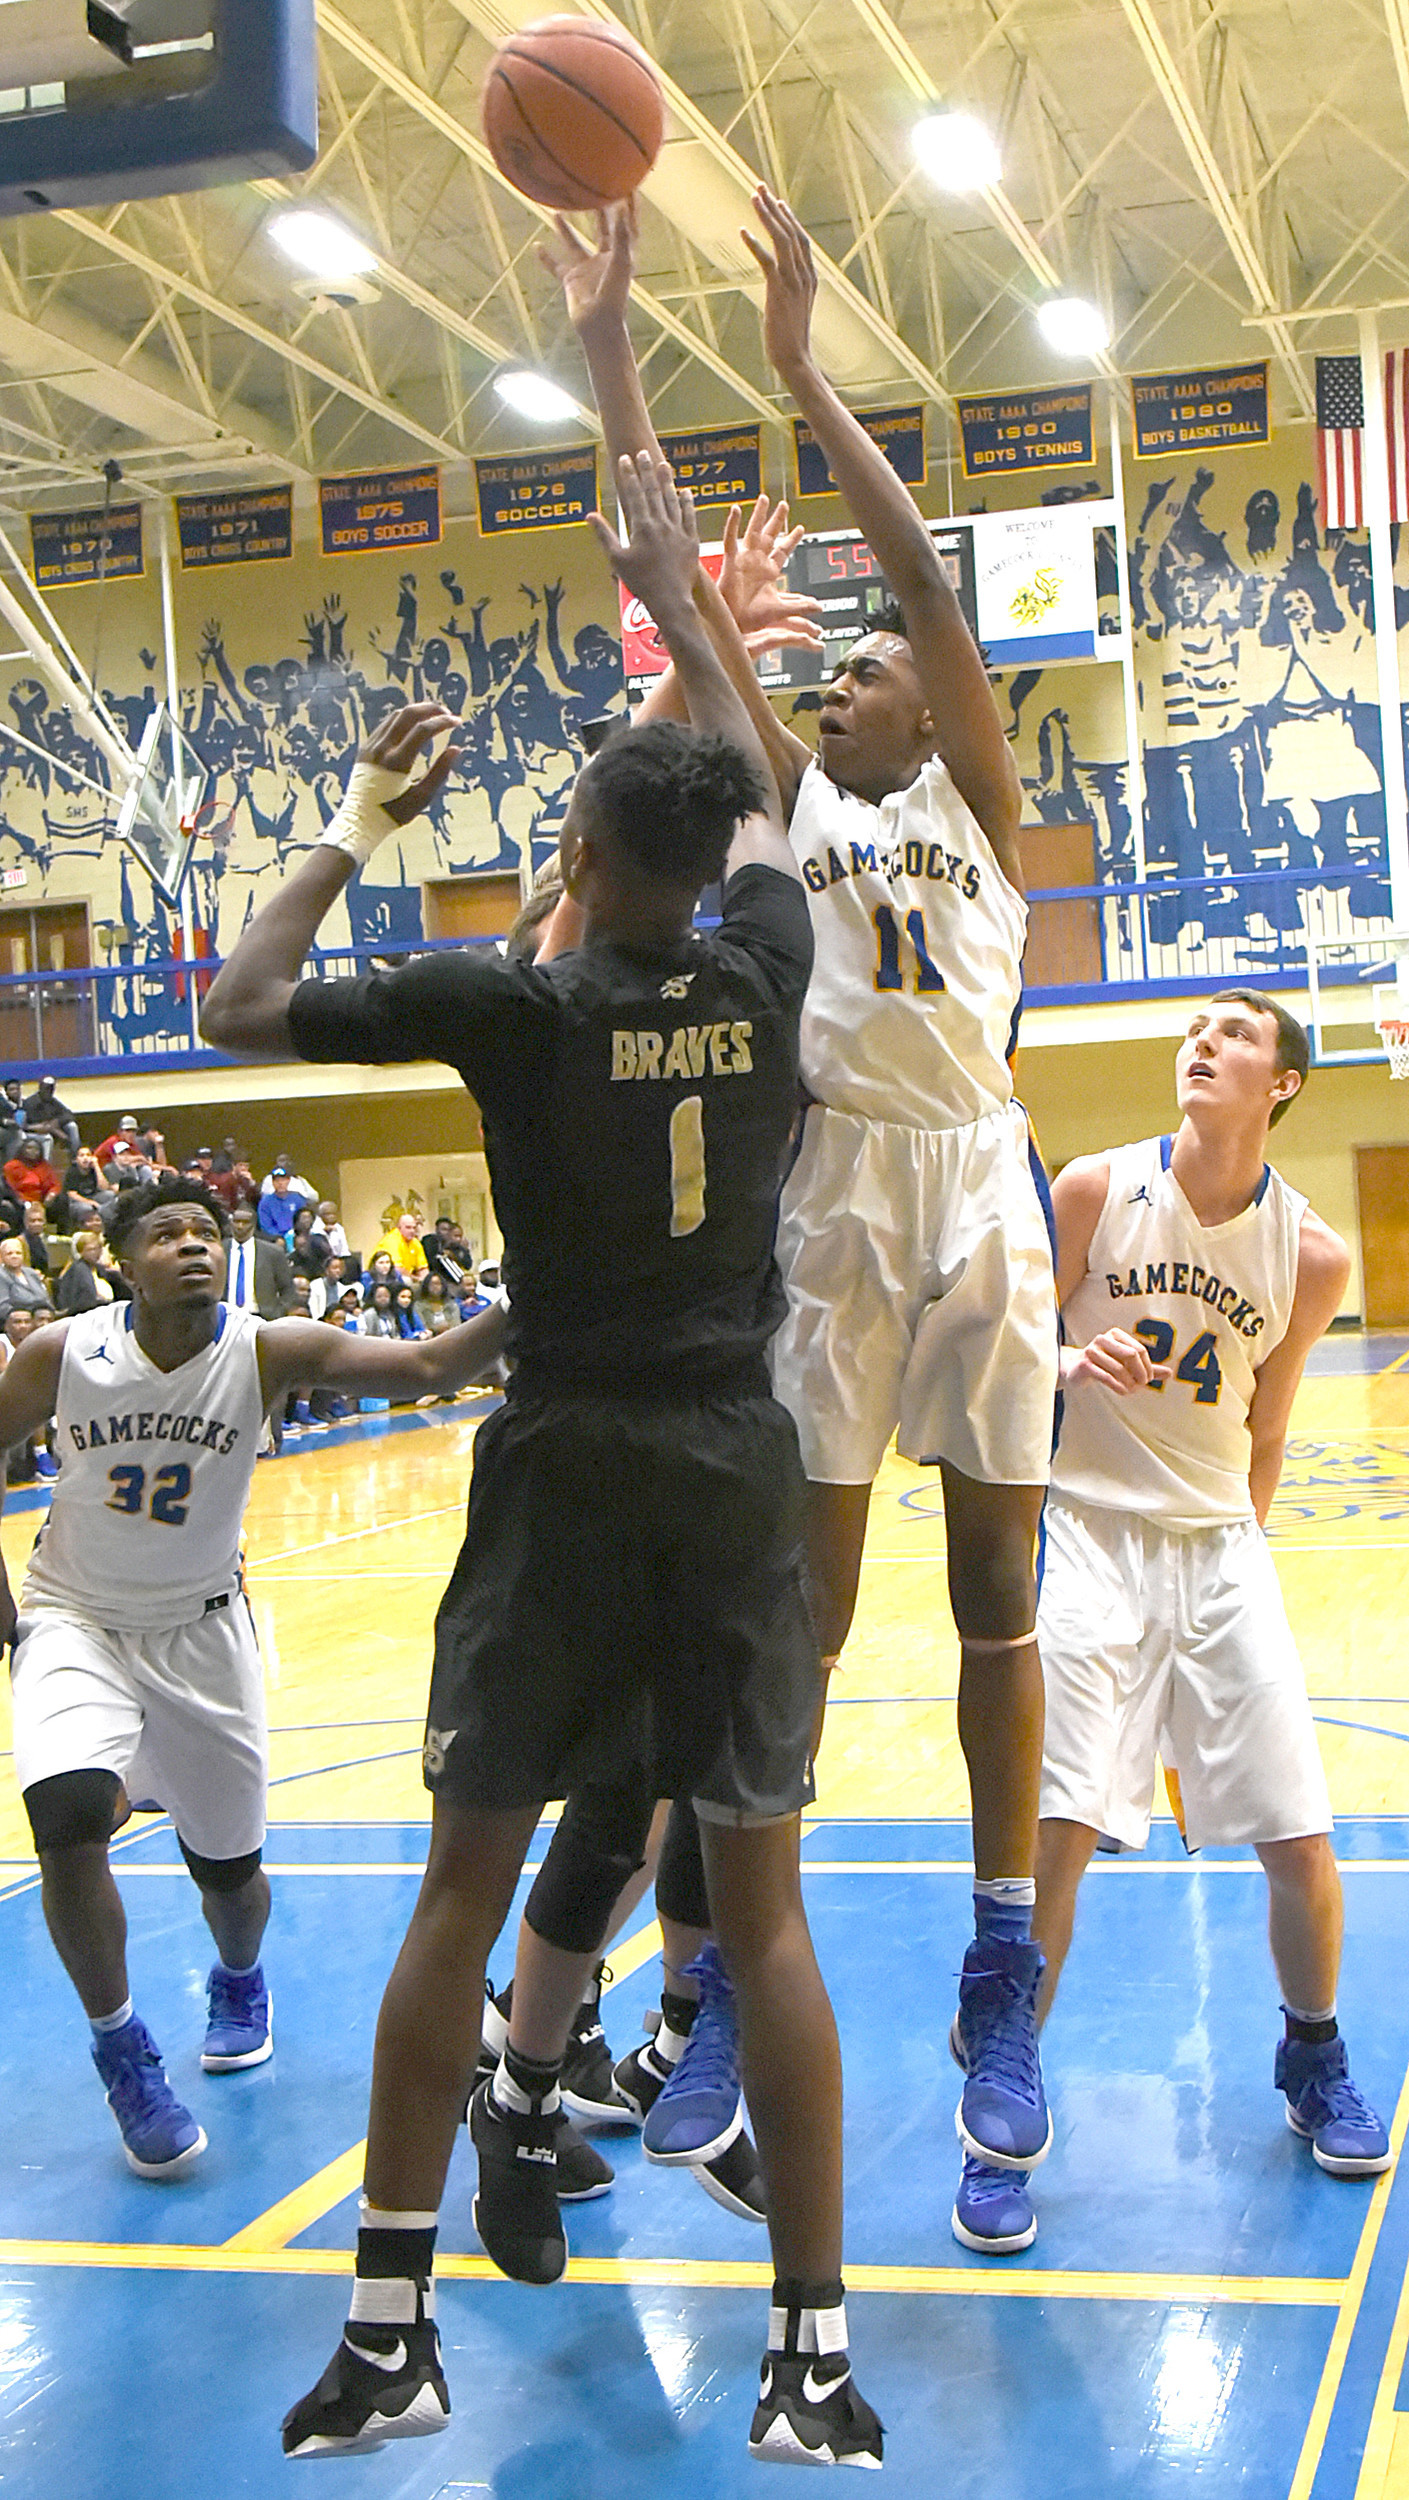 Isiah Moore (11) scored 34 points in Sumter's 87-53 victory over Socastee on Friday at the SHS gymnasium.